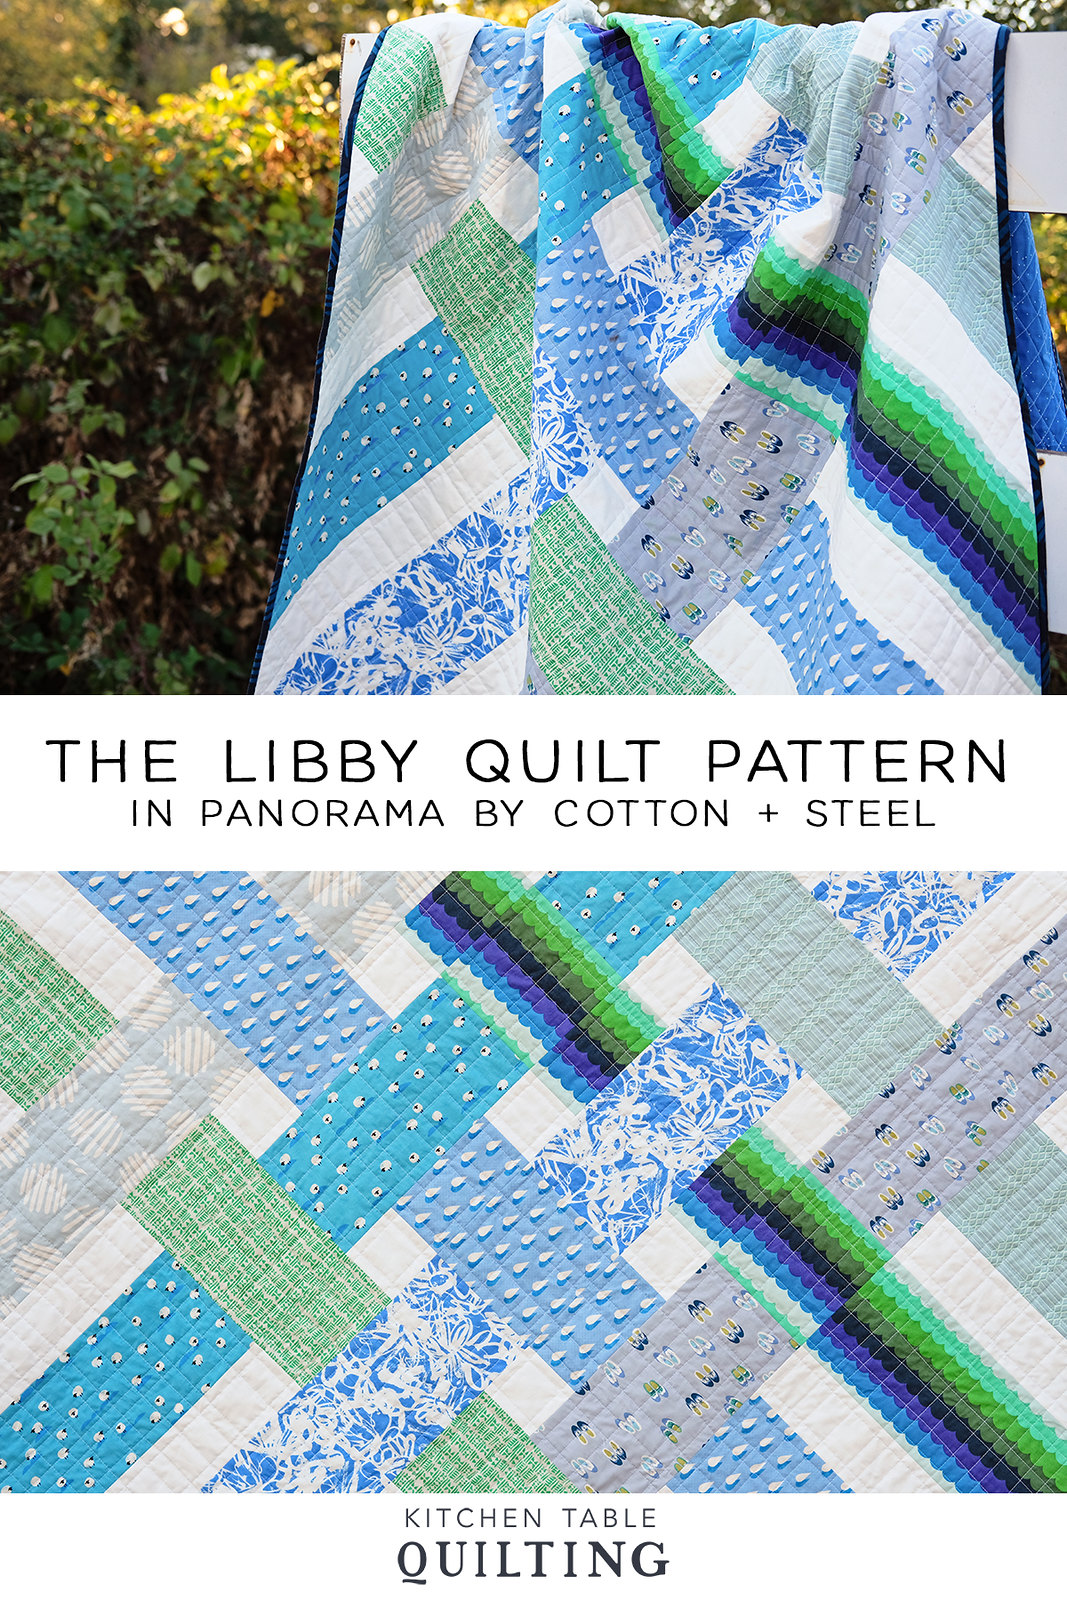 The Libby Quilt in Panorama - Kitchen Table Quilting